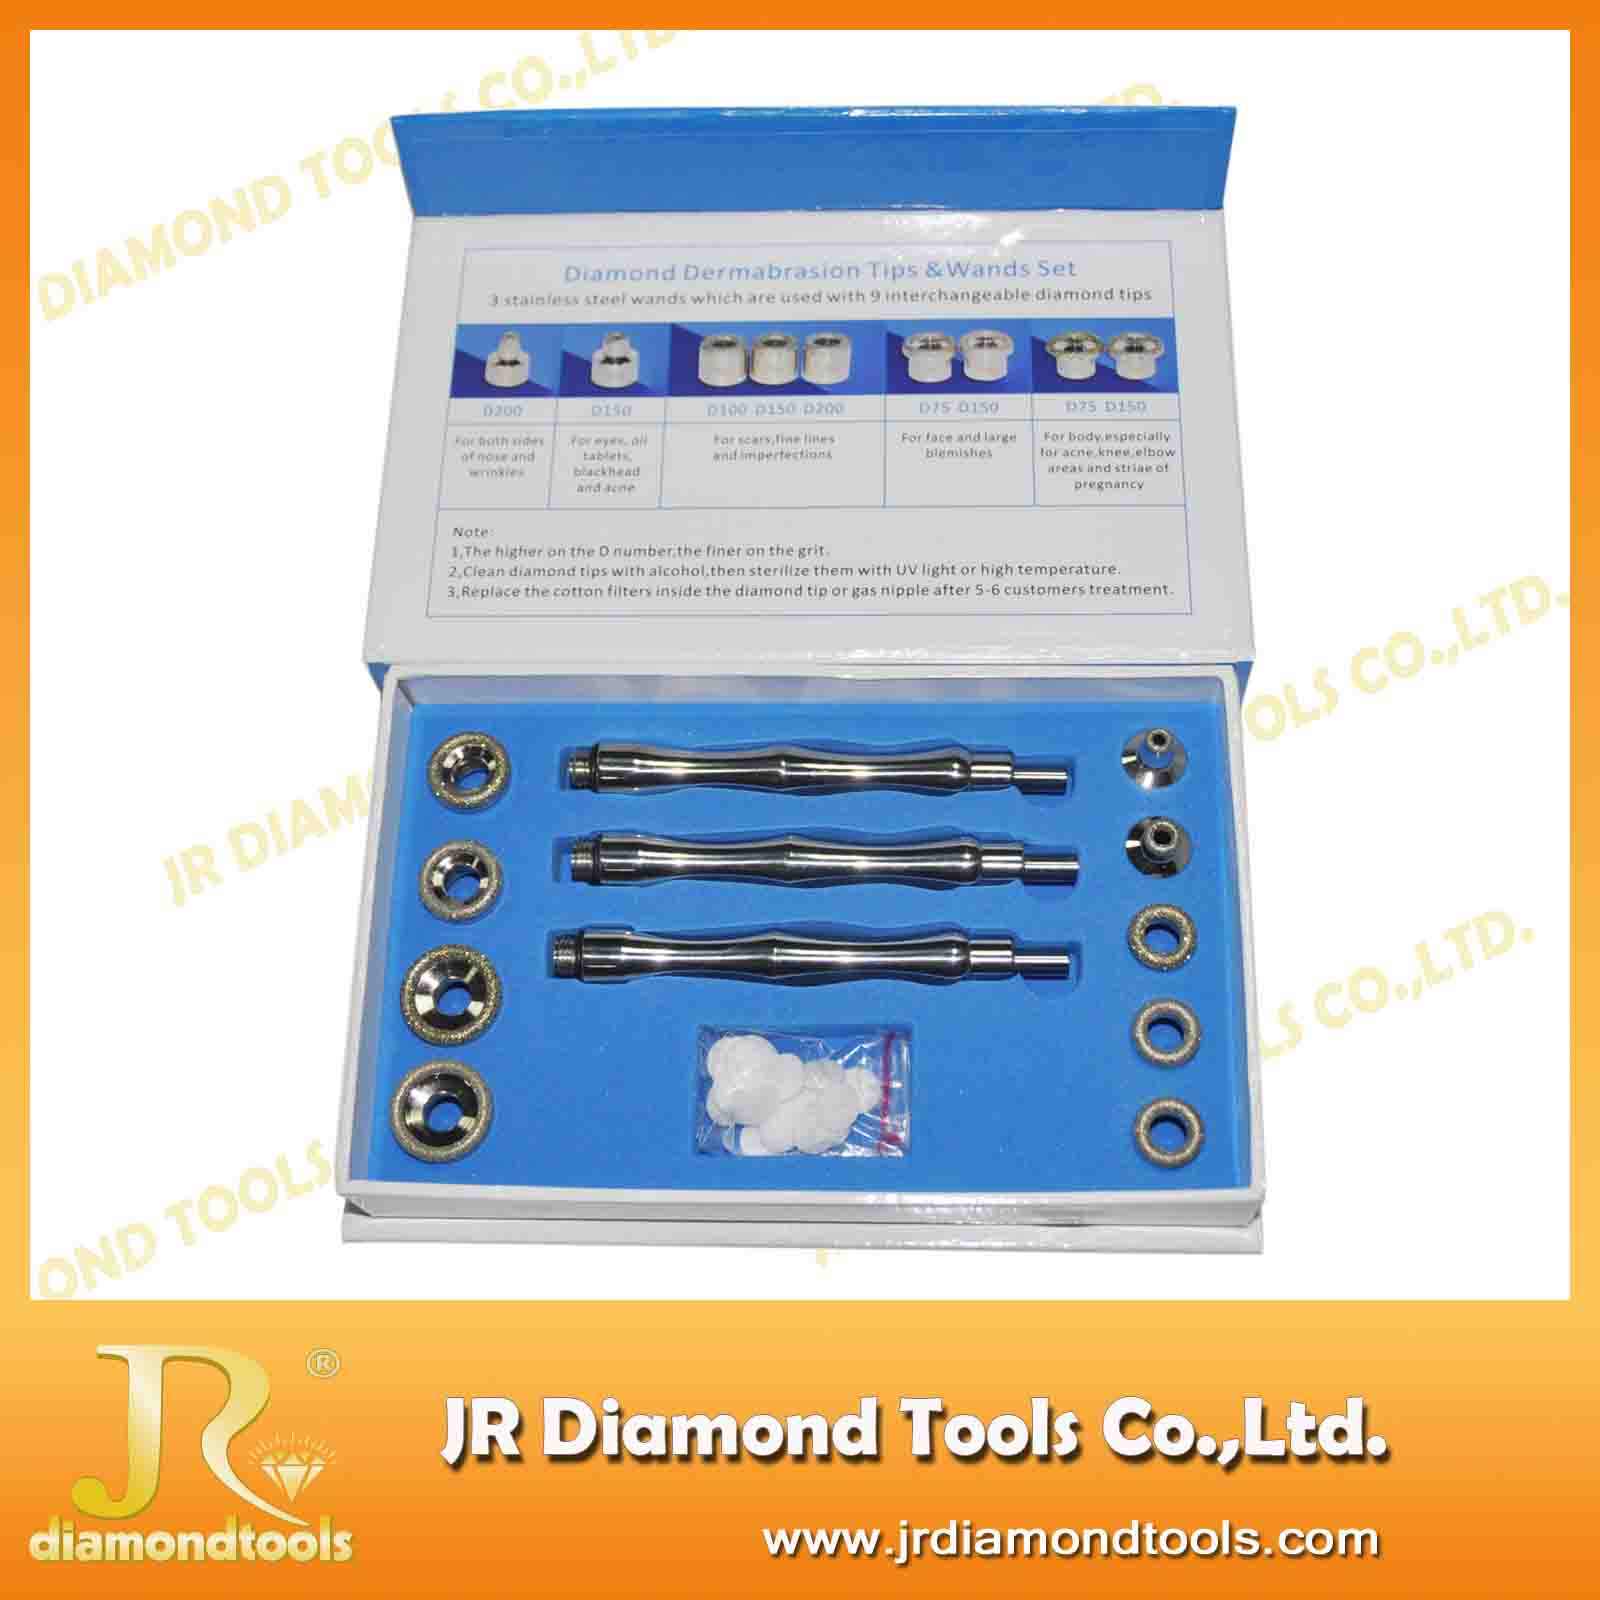 aluminum oxide crystal diamond 9 tip microdermabrasion portable